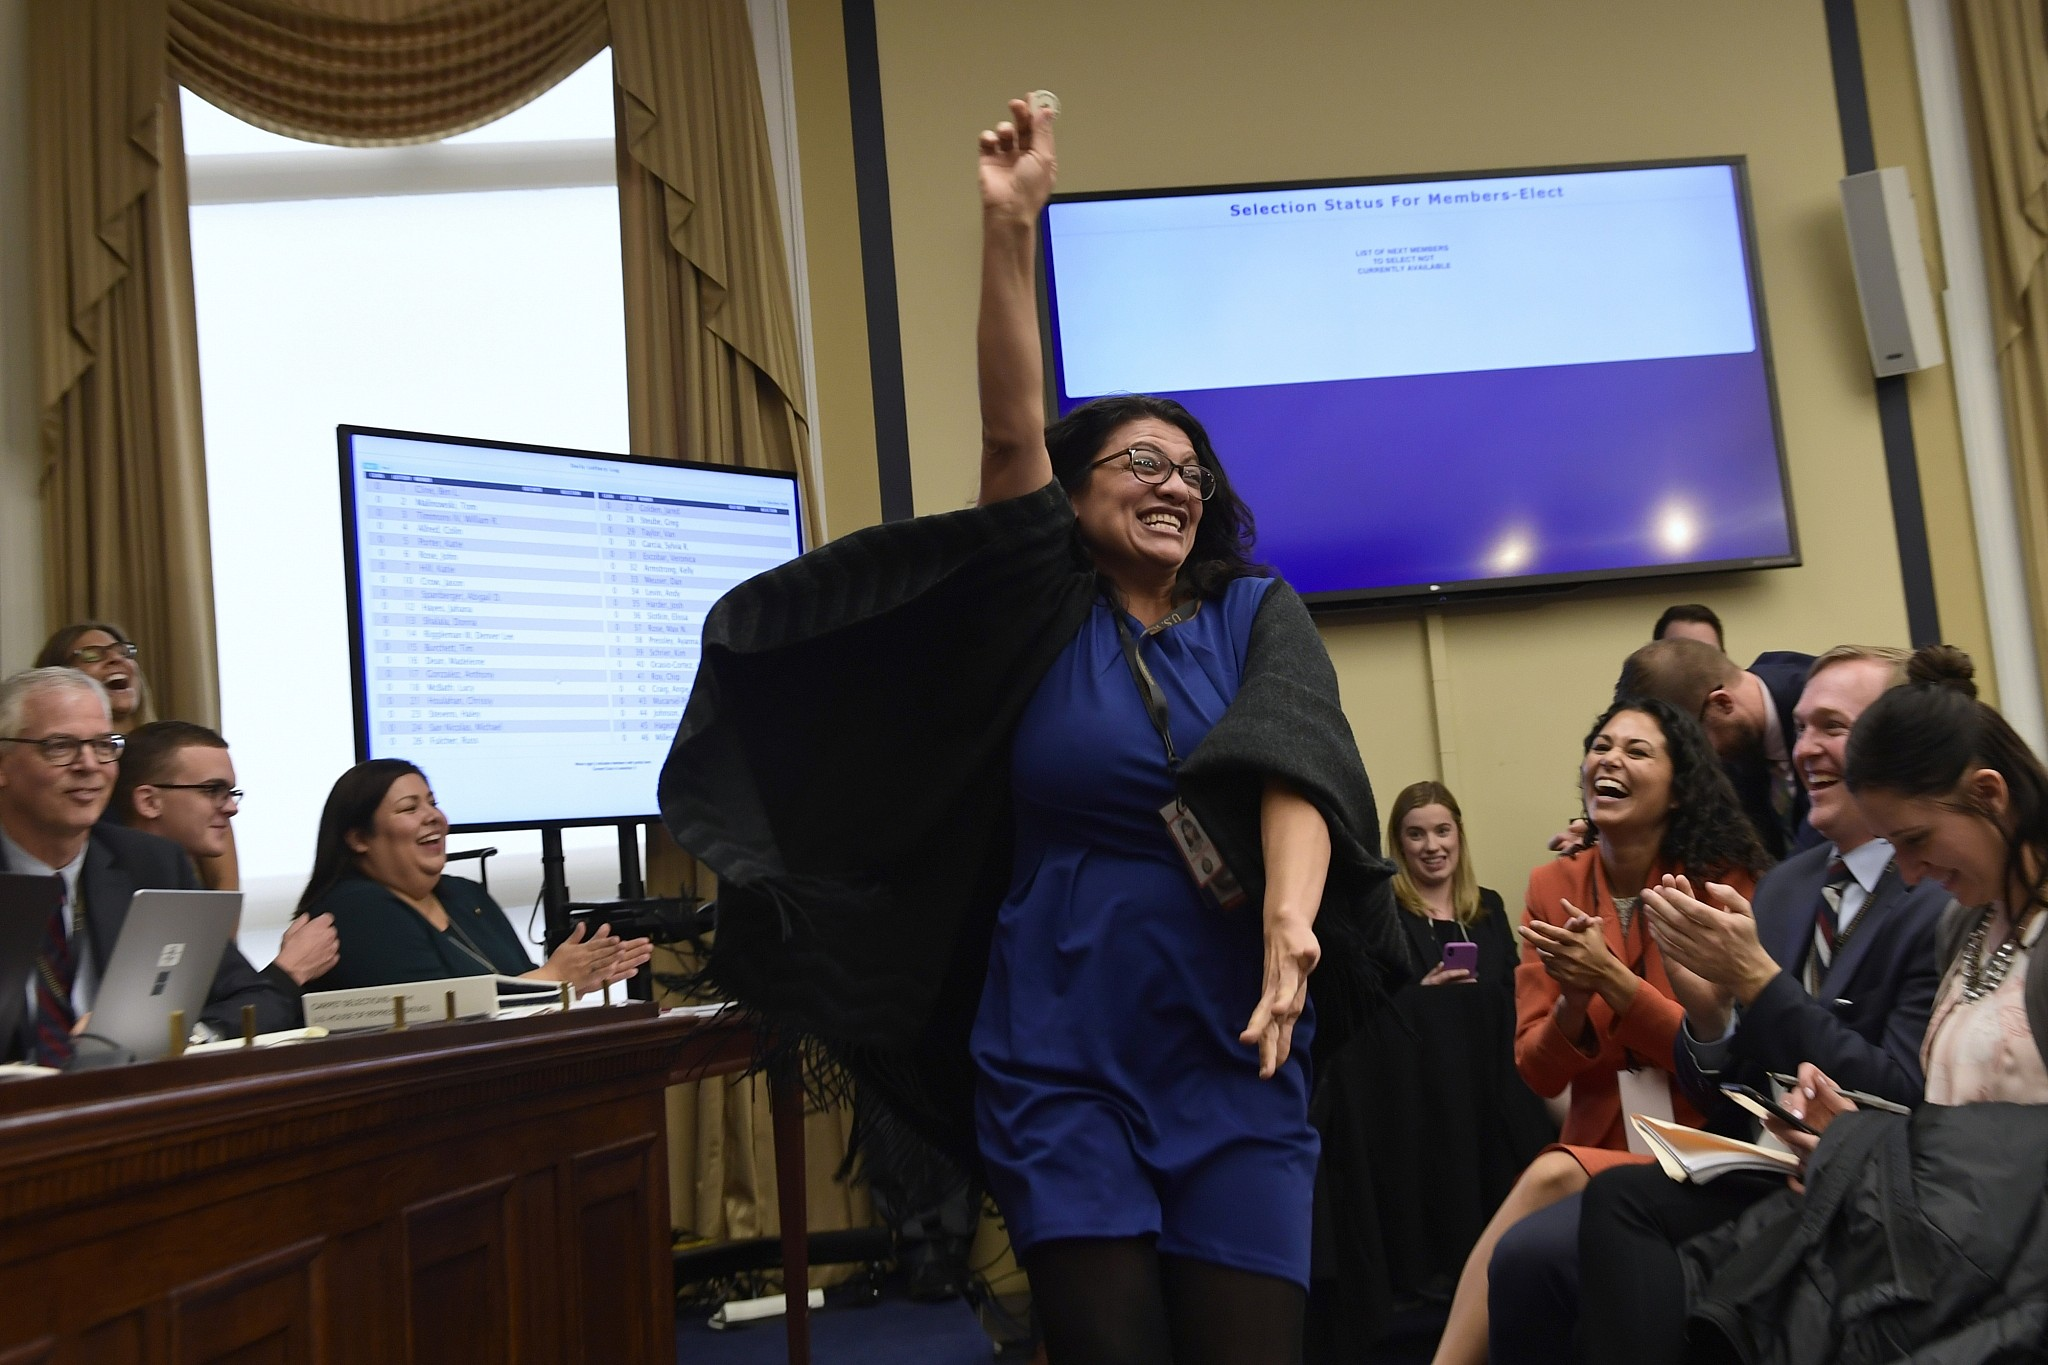 Rashida Tlaib Will be Sworn in Using Thomas Jefferson's Quran